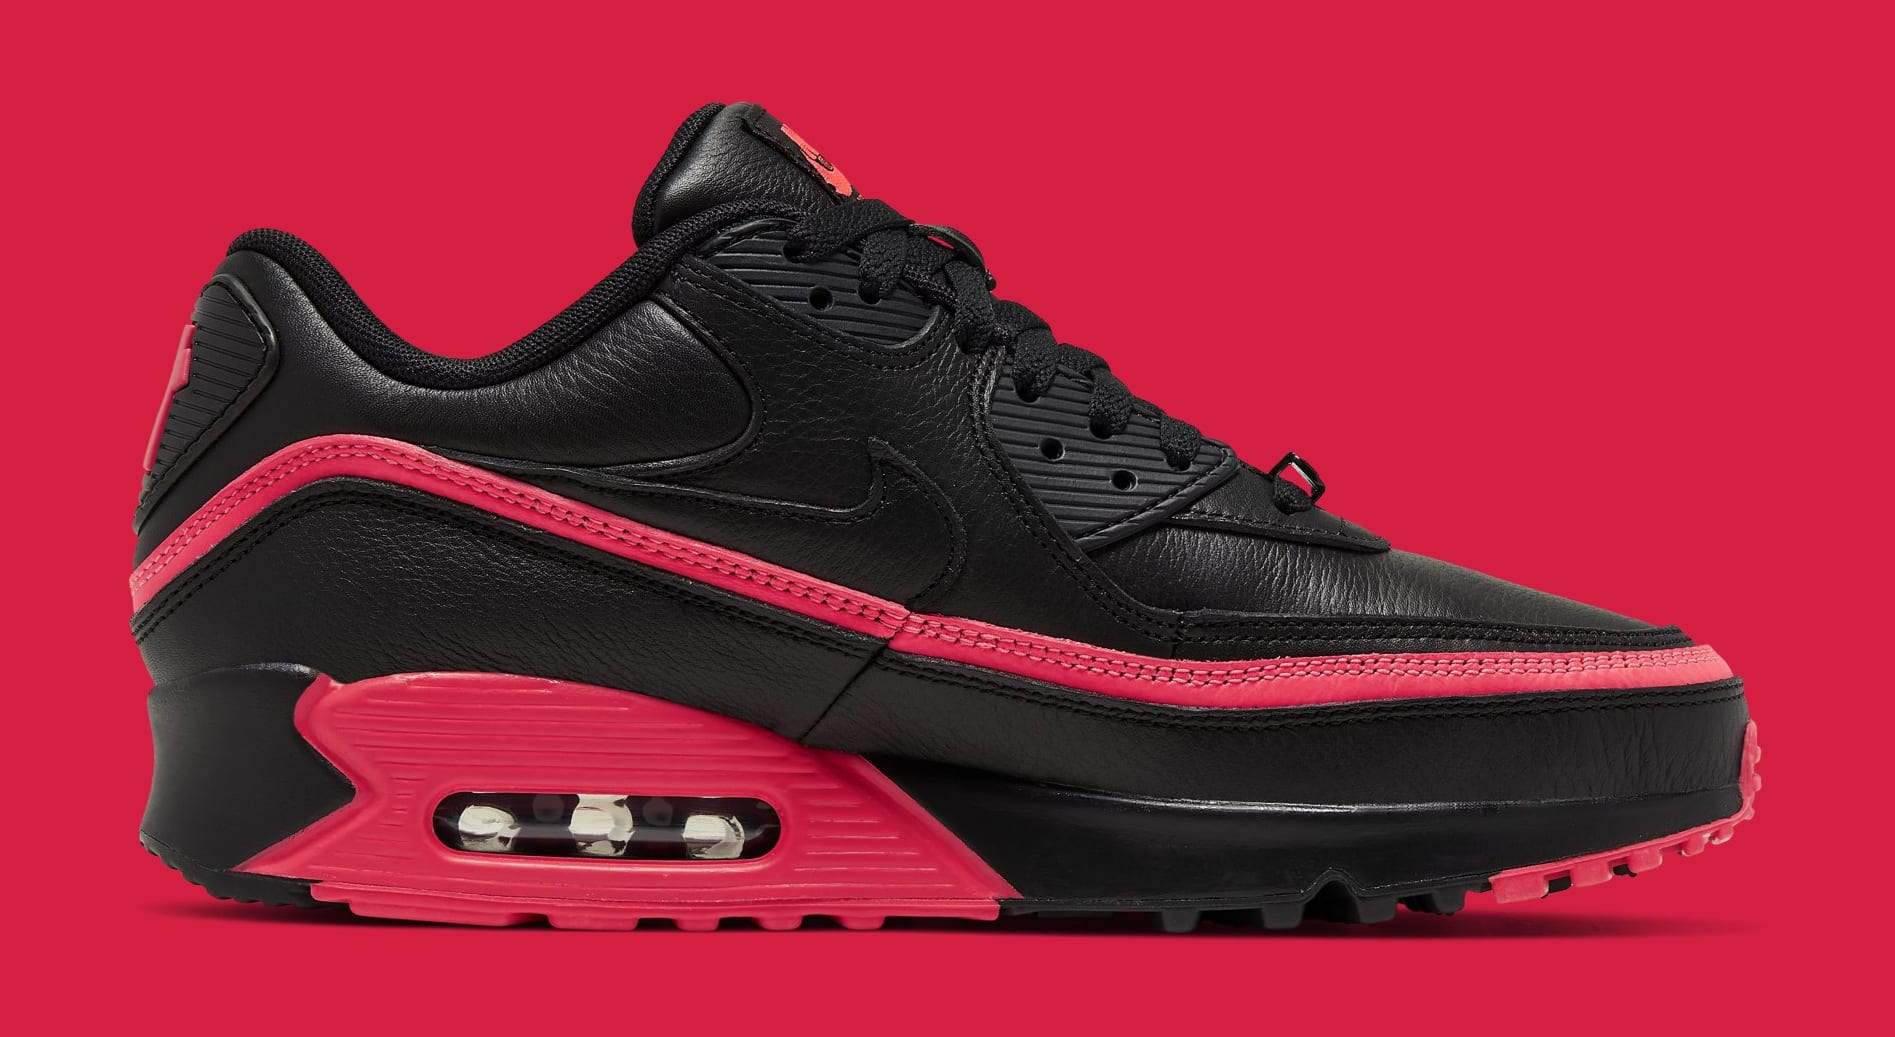 undefeated-nike-air-max-90-black-solar-red-cj7197-003-medial